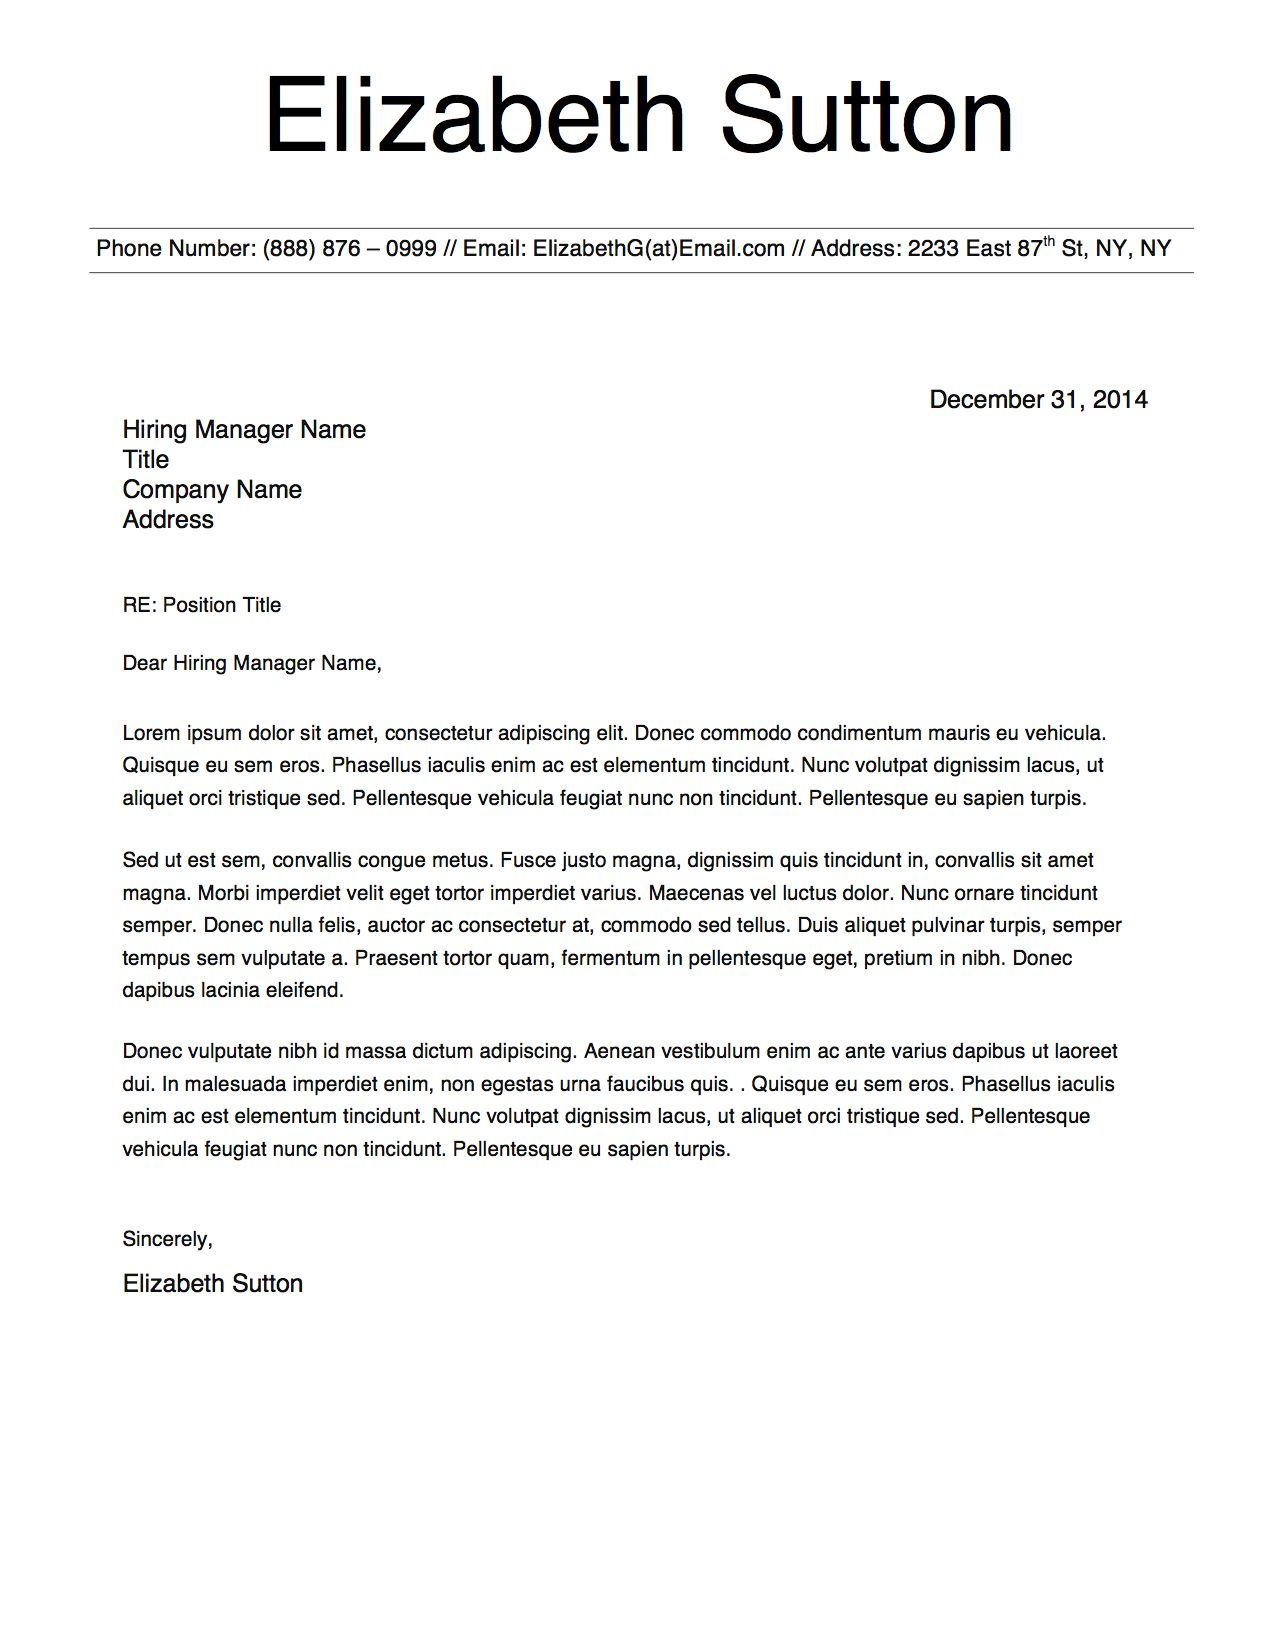 Elizabeth Sutton Cover Letter Template  Elizabeth Sutton Resume